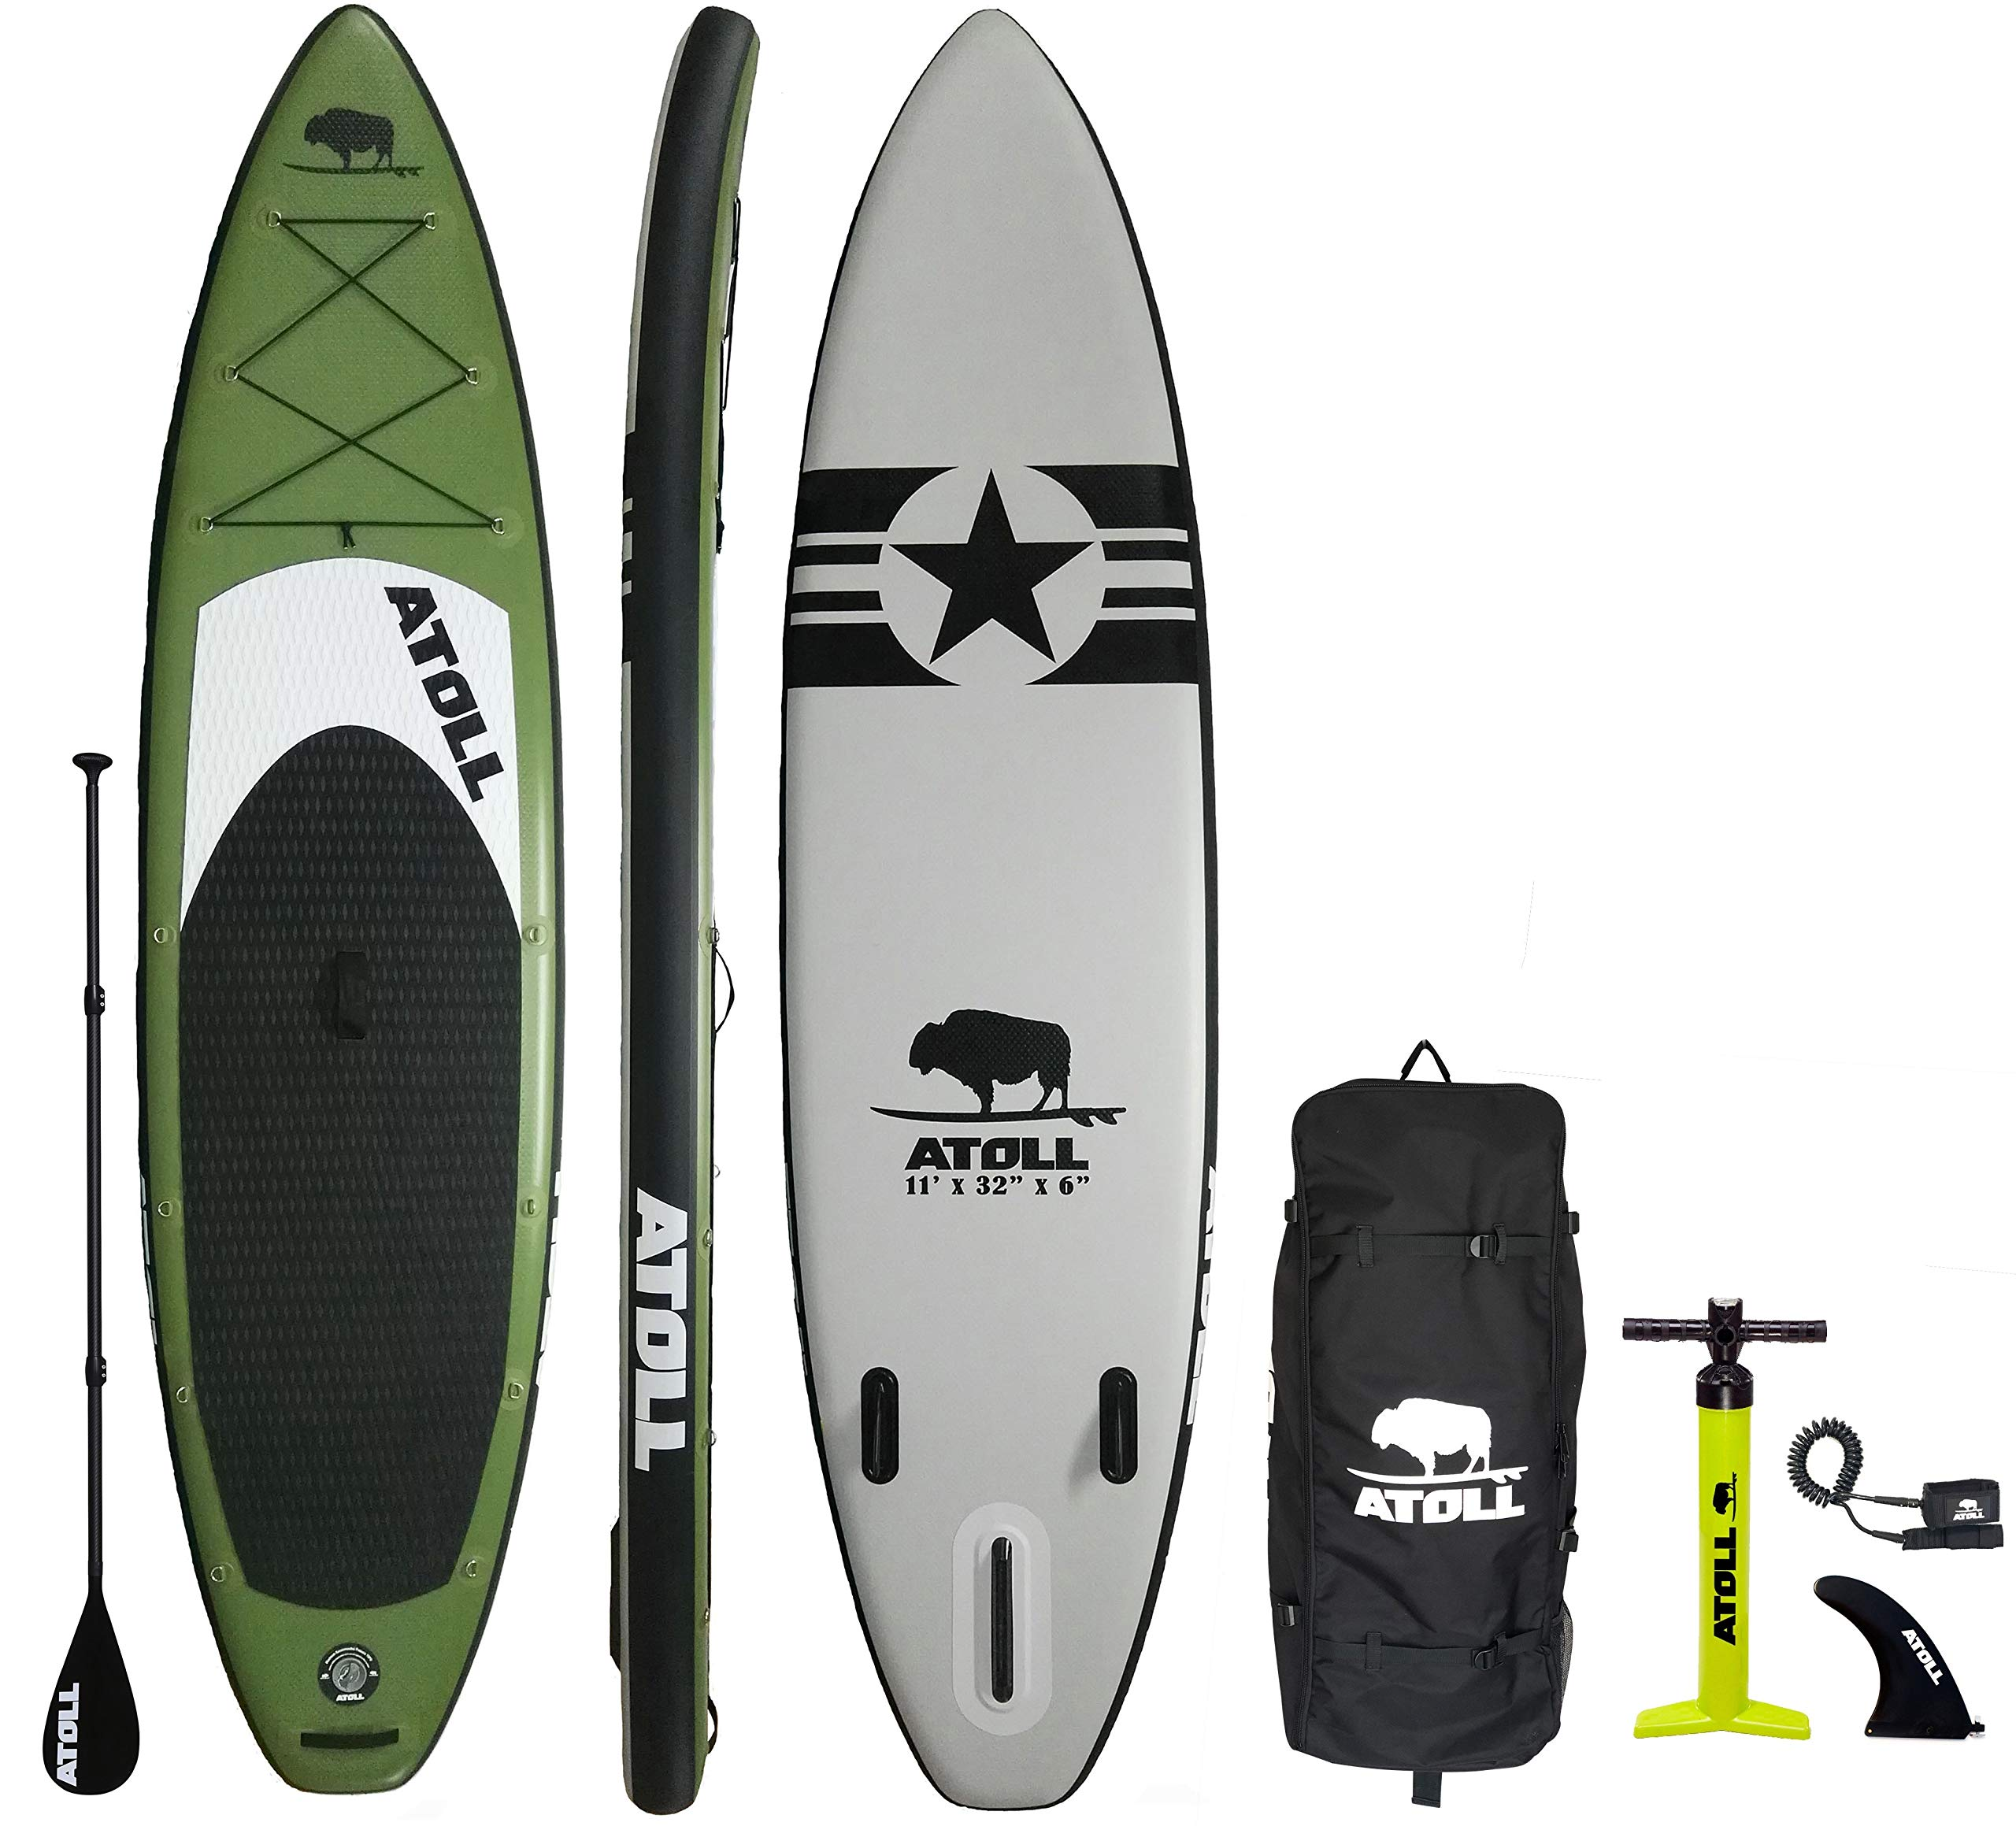 Atoll 11'0'' Foot Inflatable Stand Up Paddle Board, (6 Inches Thick, 32 inches Wide) ISUP, Bravo Hand Pump and 3 Piece Paddle, Travel Backpack New Paddle Leash Included (Green)